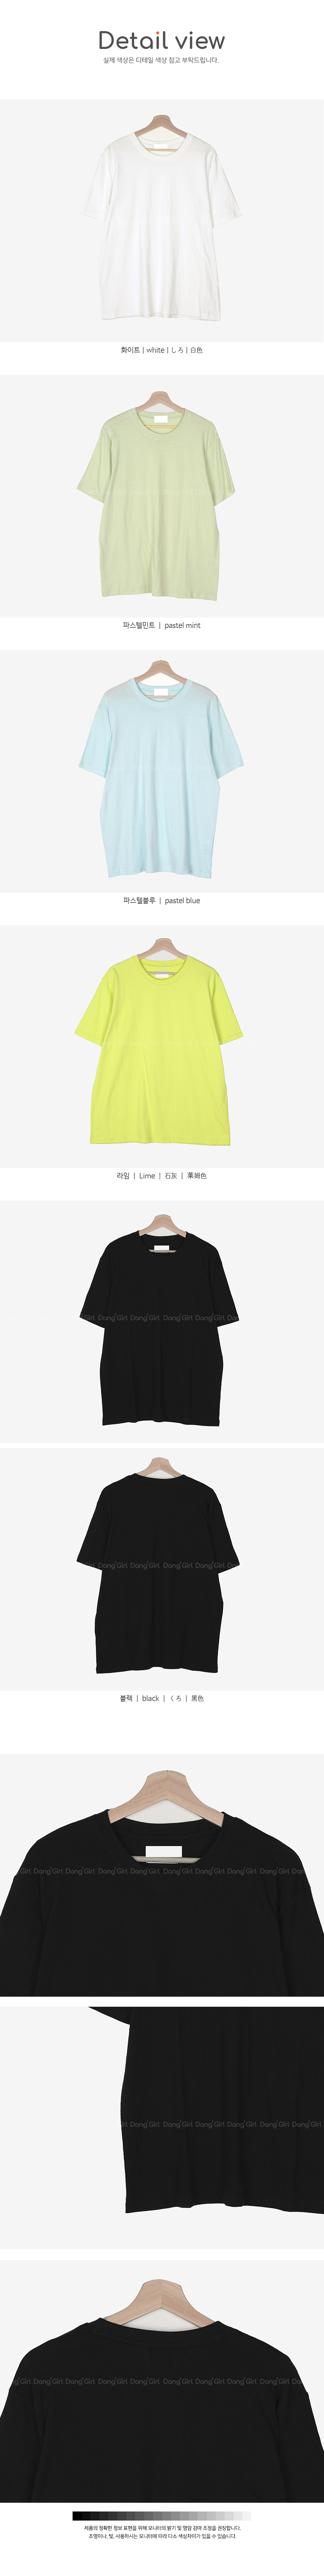 55-99 Daily 20 count cotton T-shirt